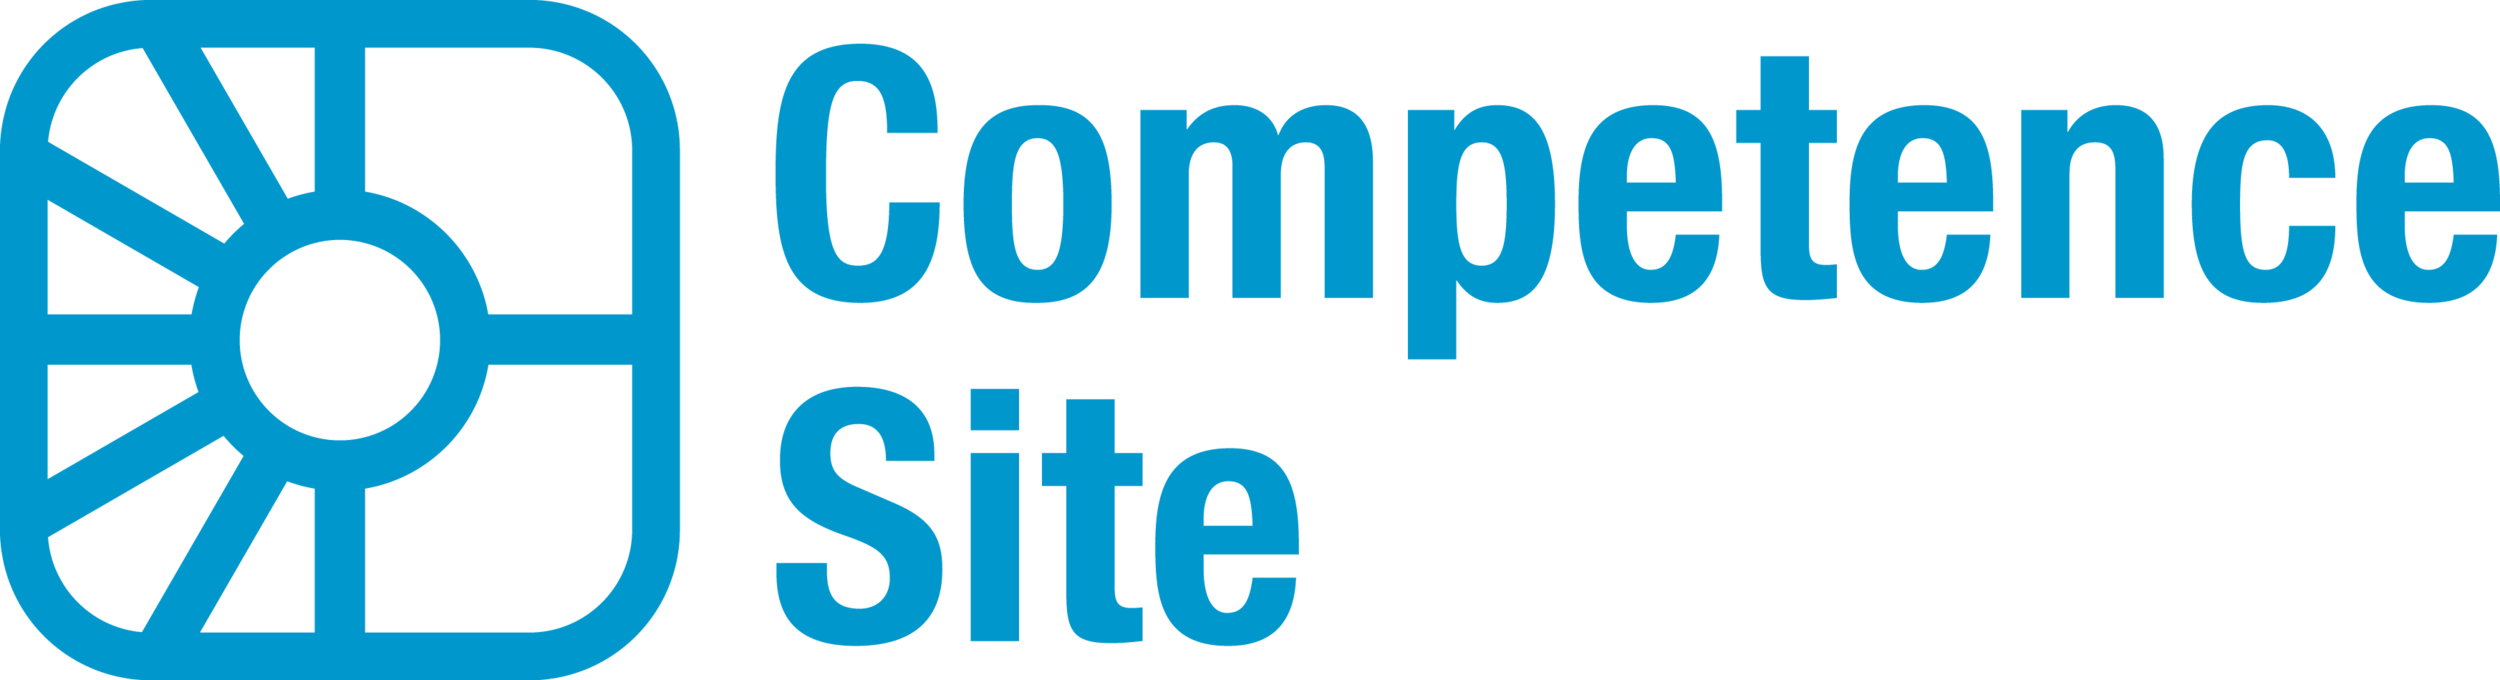 01-Competence Site-Logo-20160127-RZ-300-als Pfad ohne Rand.png